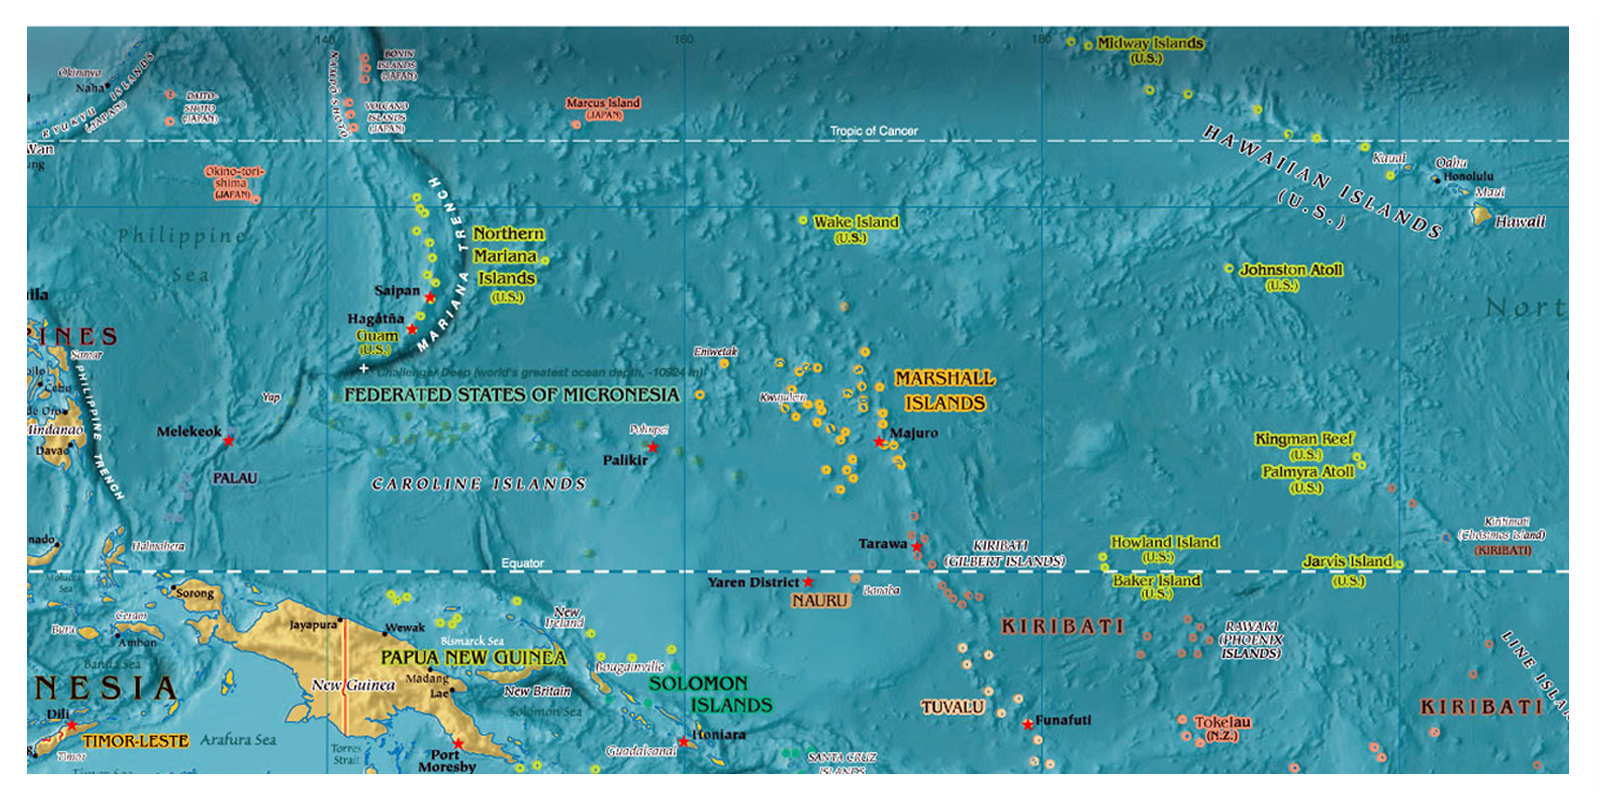 Maps Of Micronesia Map Library Maps Of The World - Micronesia interactive map